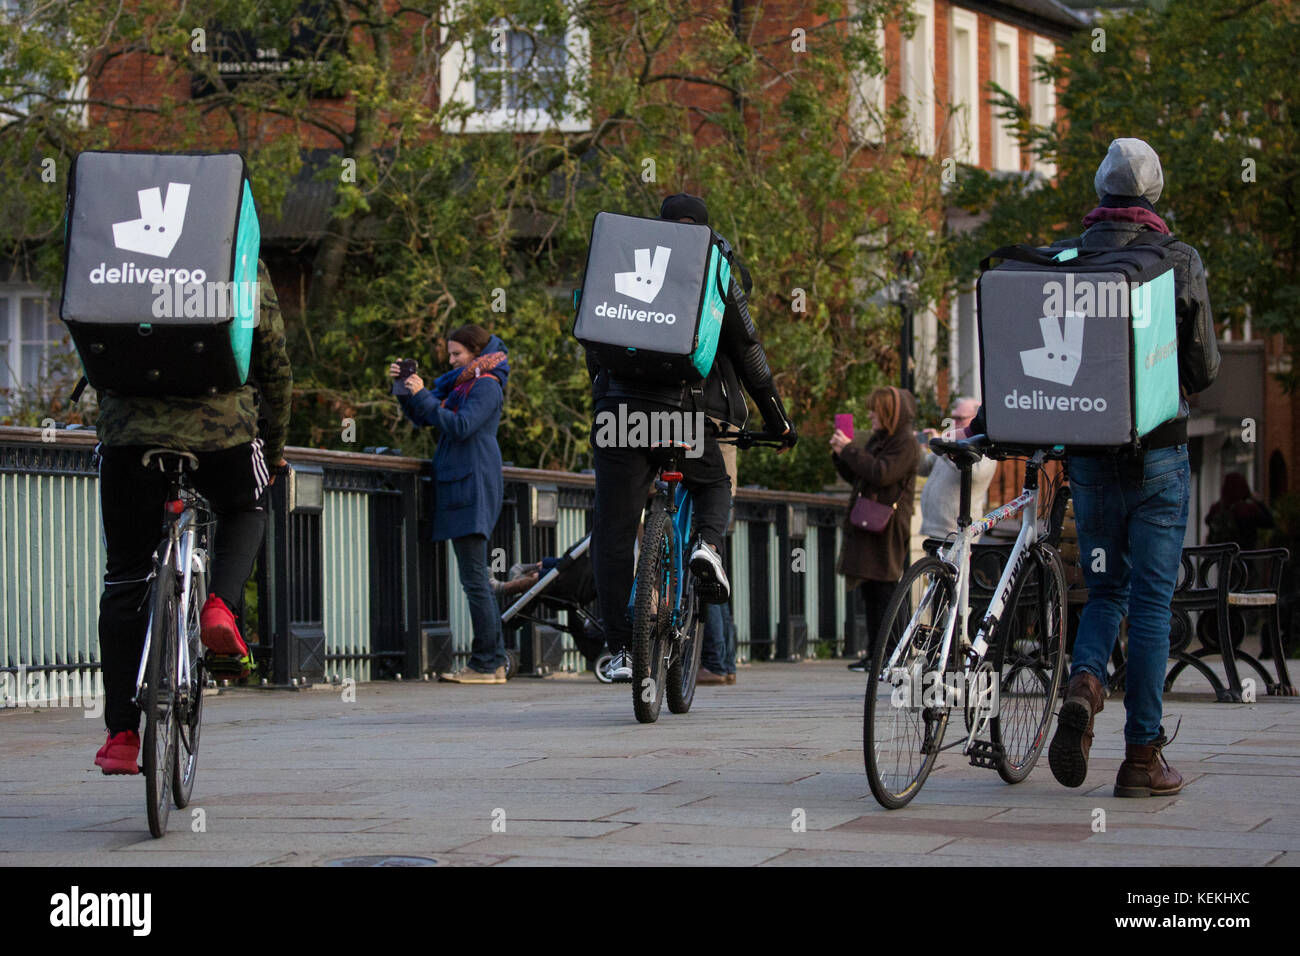 Deliveroo Rider Stock Photos  amp  Deliveroo Rider Stock . 61c64dbaa